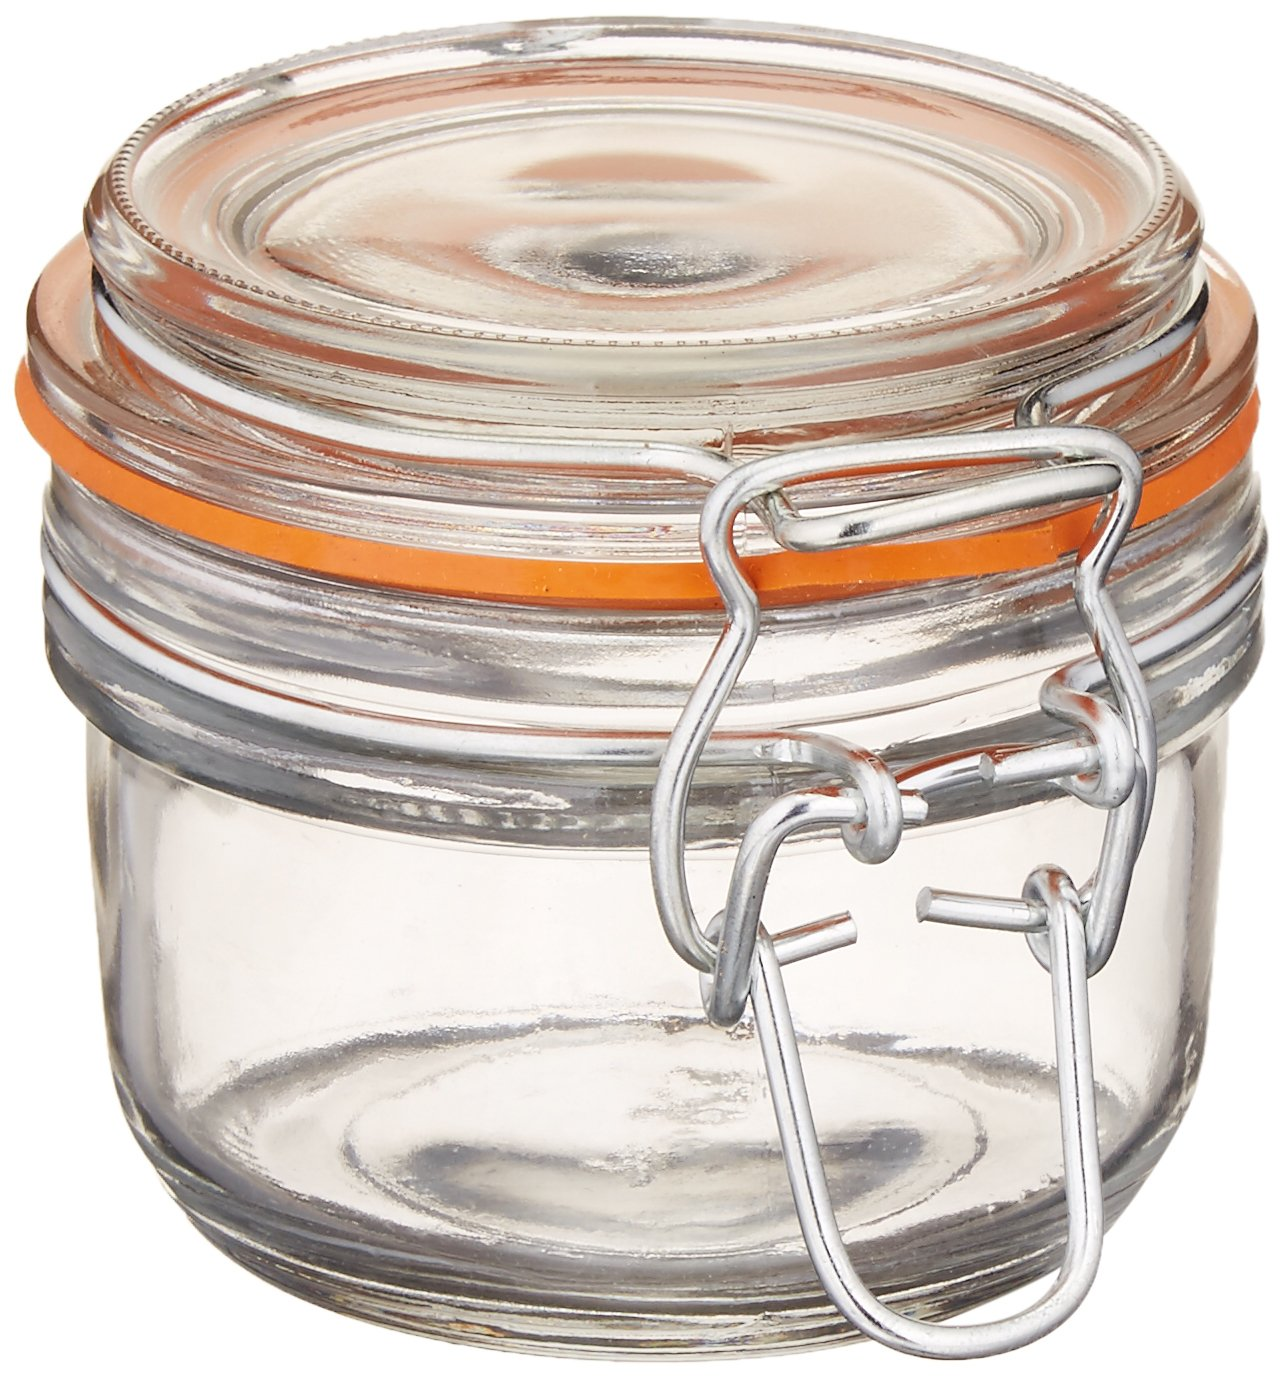 Set of 12 Anchor Hocking 5.4-Ounce Mini Glass Jar with Hermes Clamp Top Lid Clear 98908